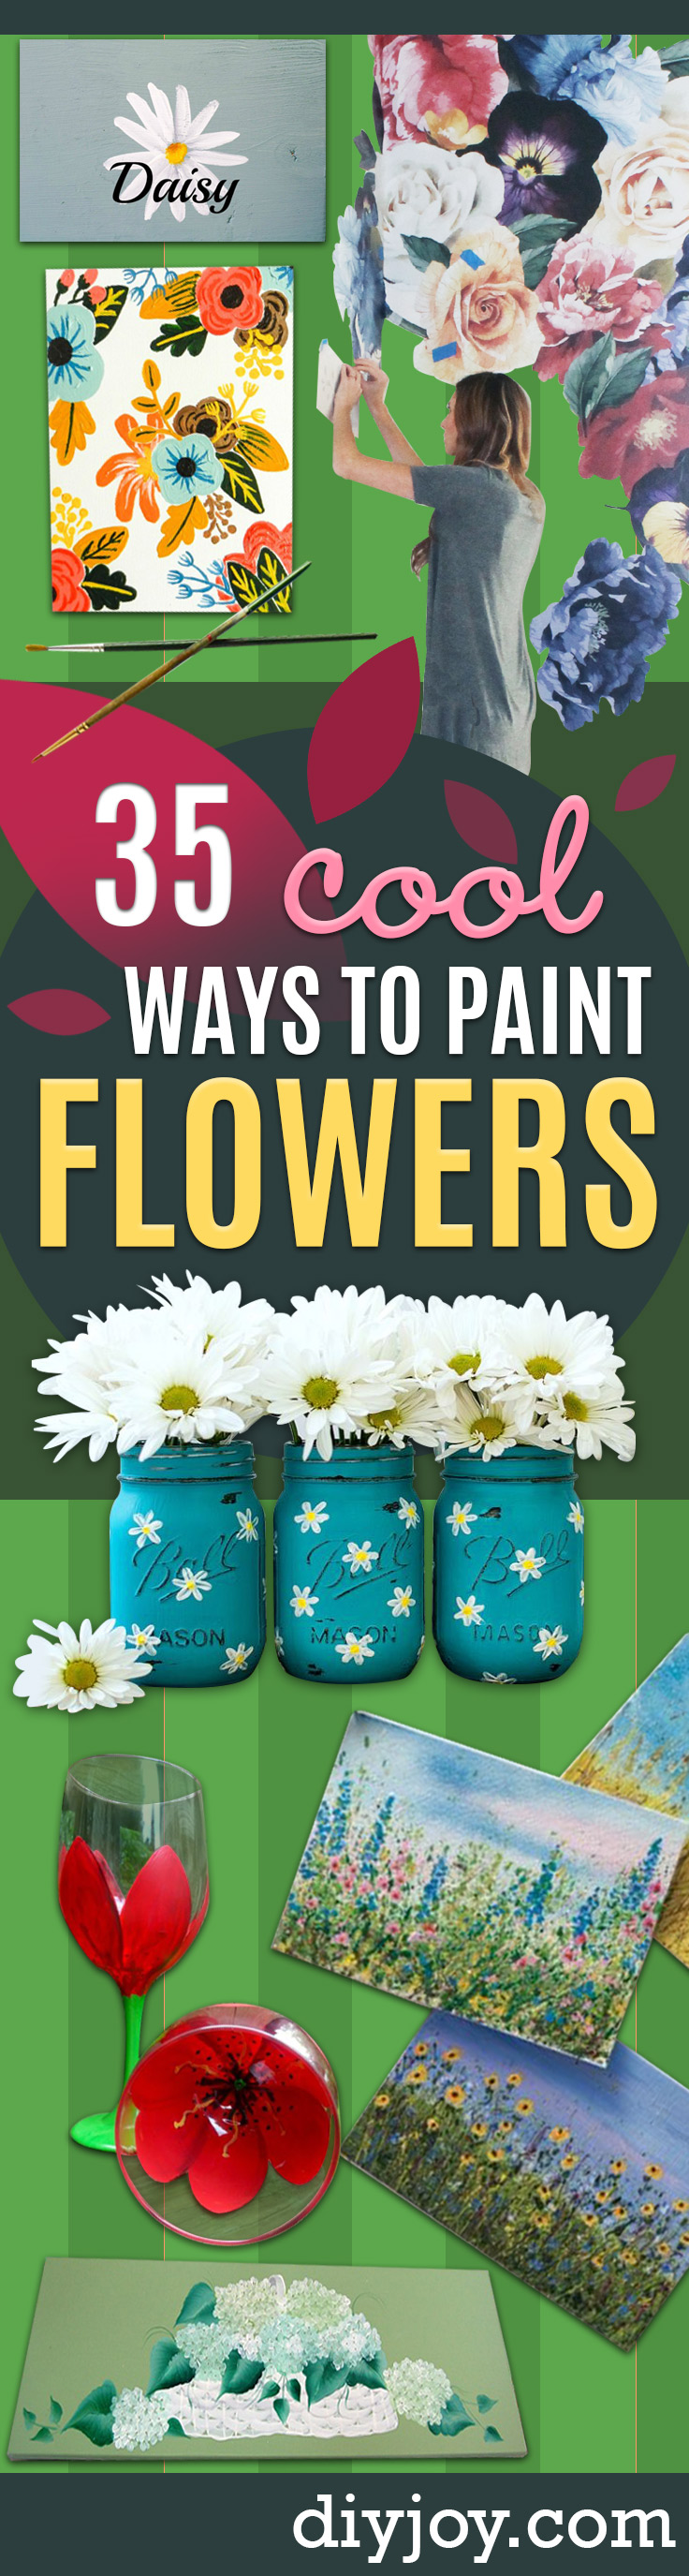 How To Paint Flowers - Step by Step Tutorials for Painting Roses, Daisies, Whimsical and Abstract Floral Techniques - Easy Acrylic Flower Tutorial for Beginners - Paint on Wood, Canvas, On Wasll, Rocks, Fabric and Paper - Step by Step Instructions and How To #painting #flowers #howtopaint #diytutorials #diy http://diyjoy.com/how-to-paint-flowers